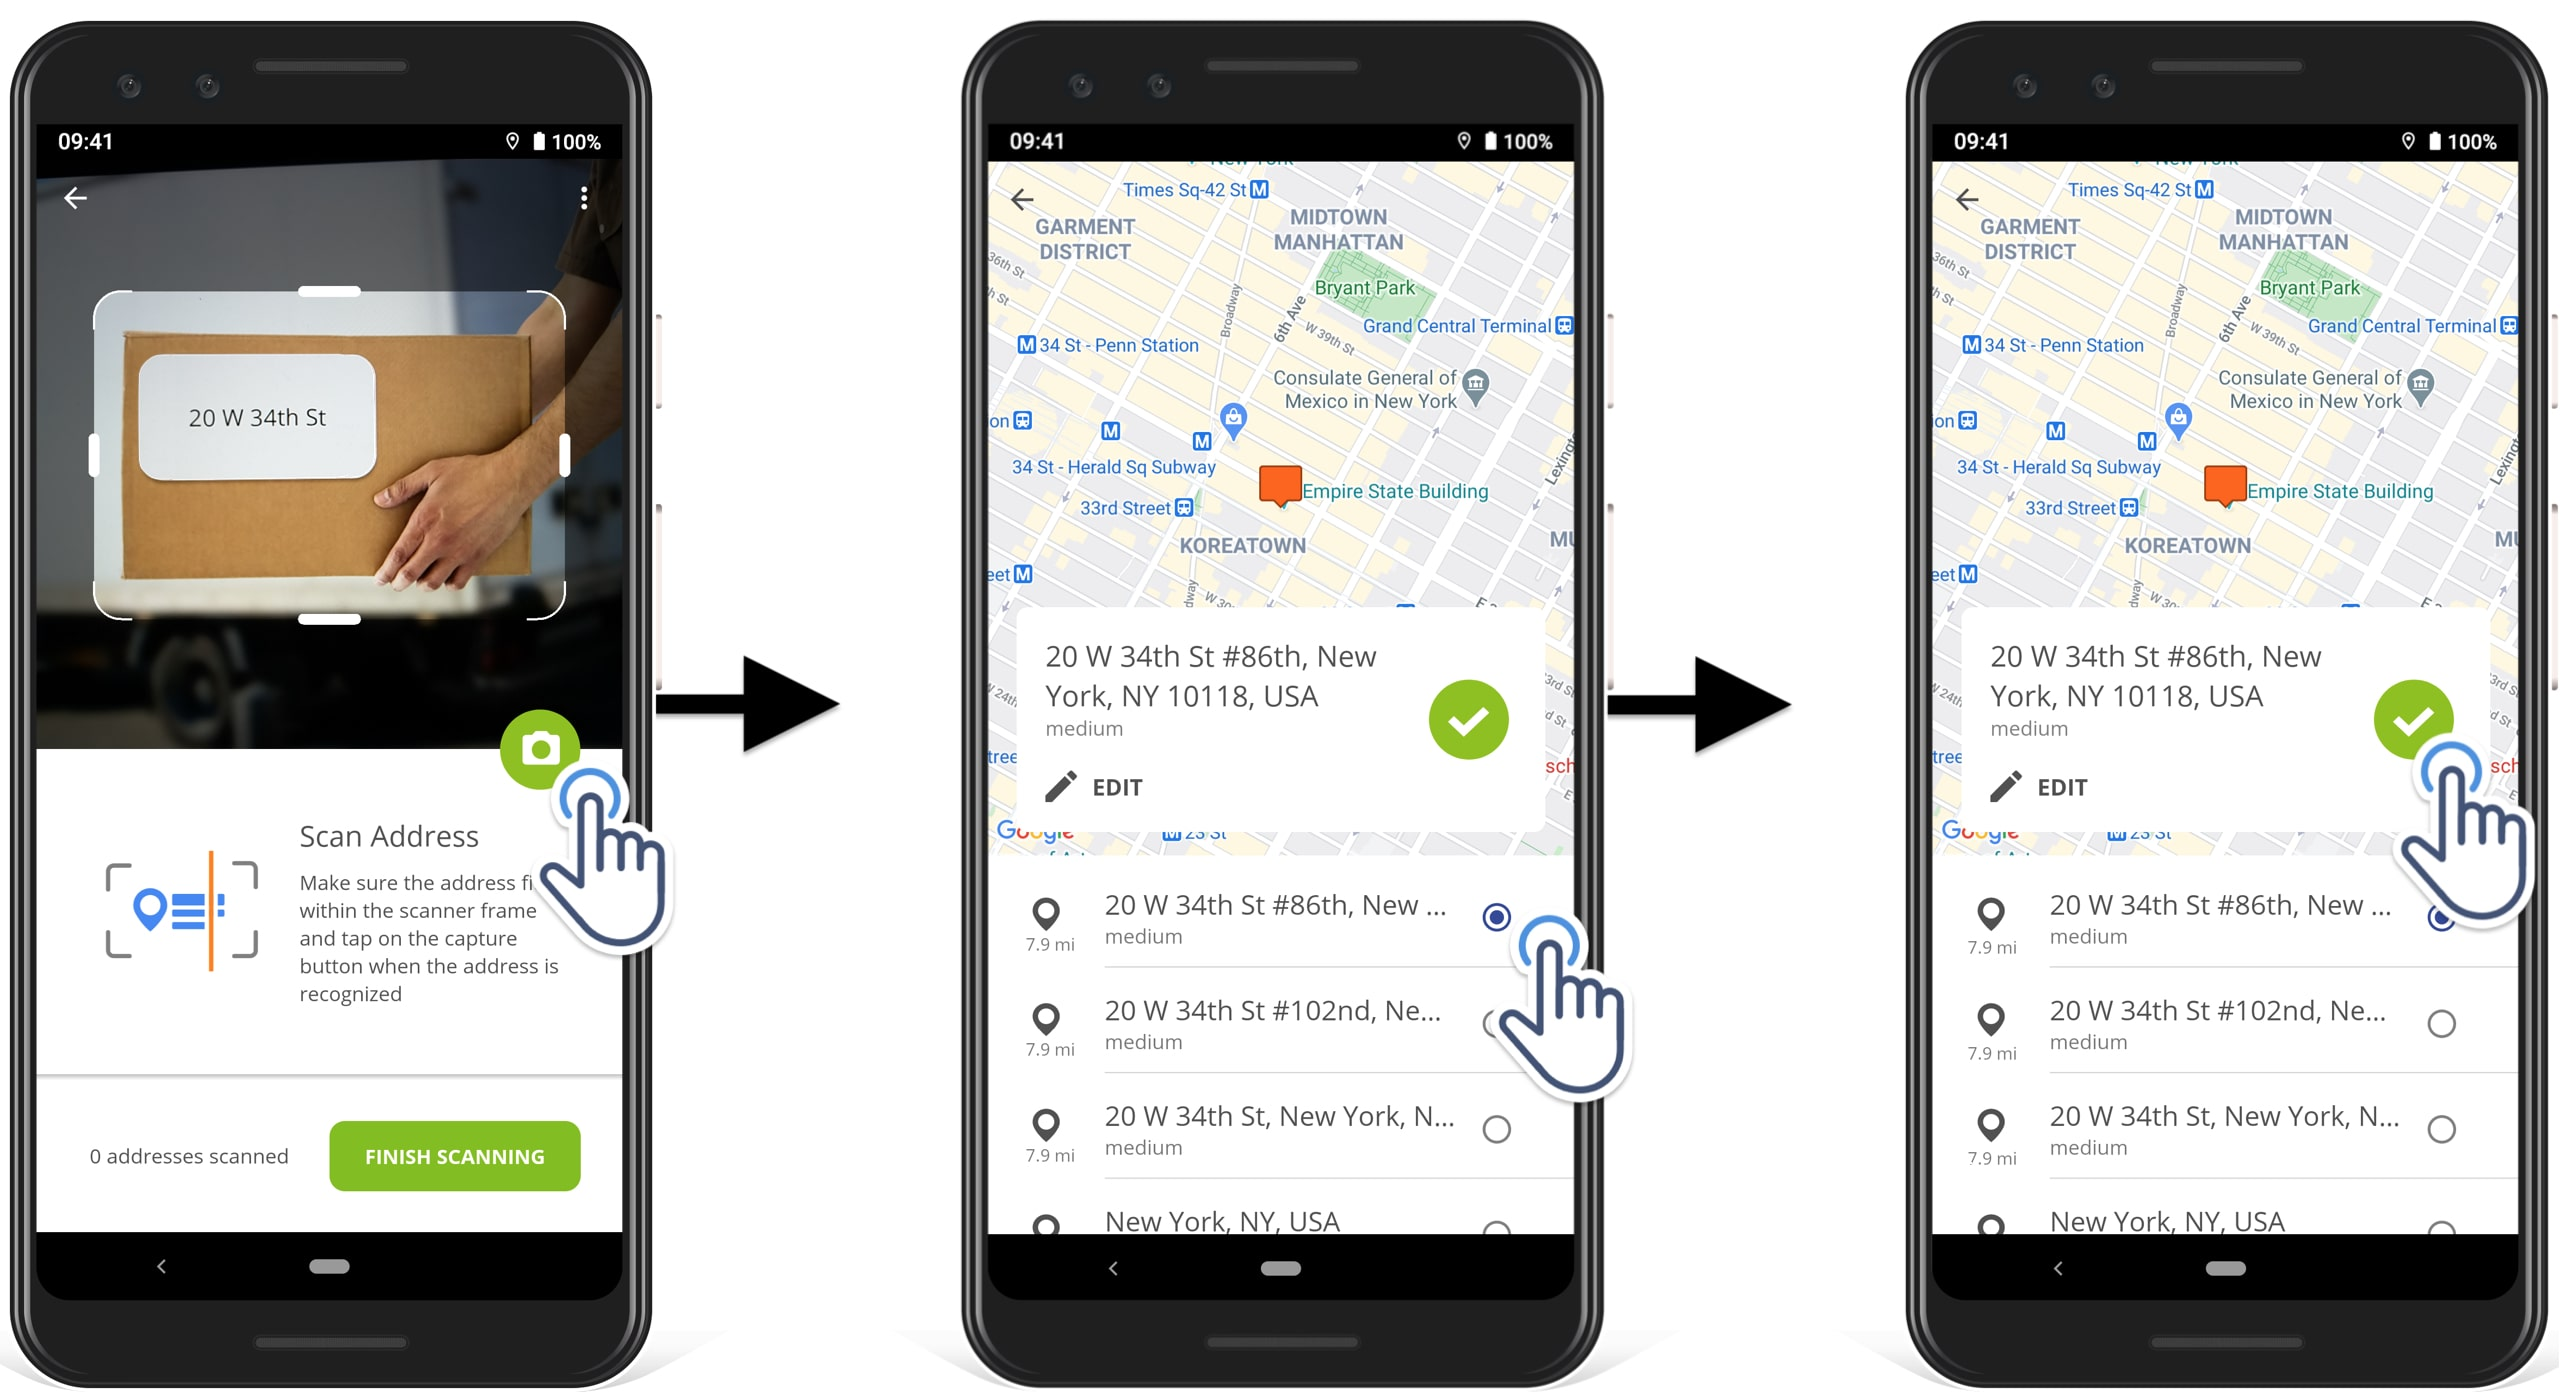 how to select suggested geocoded address after scanning